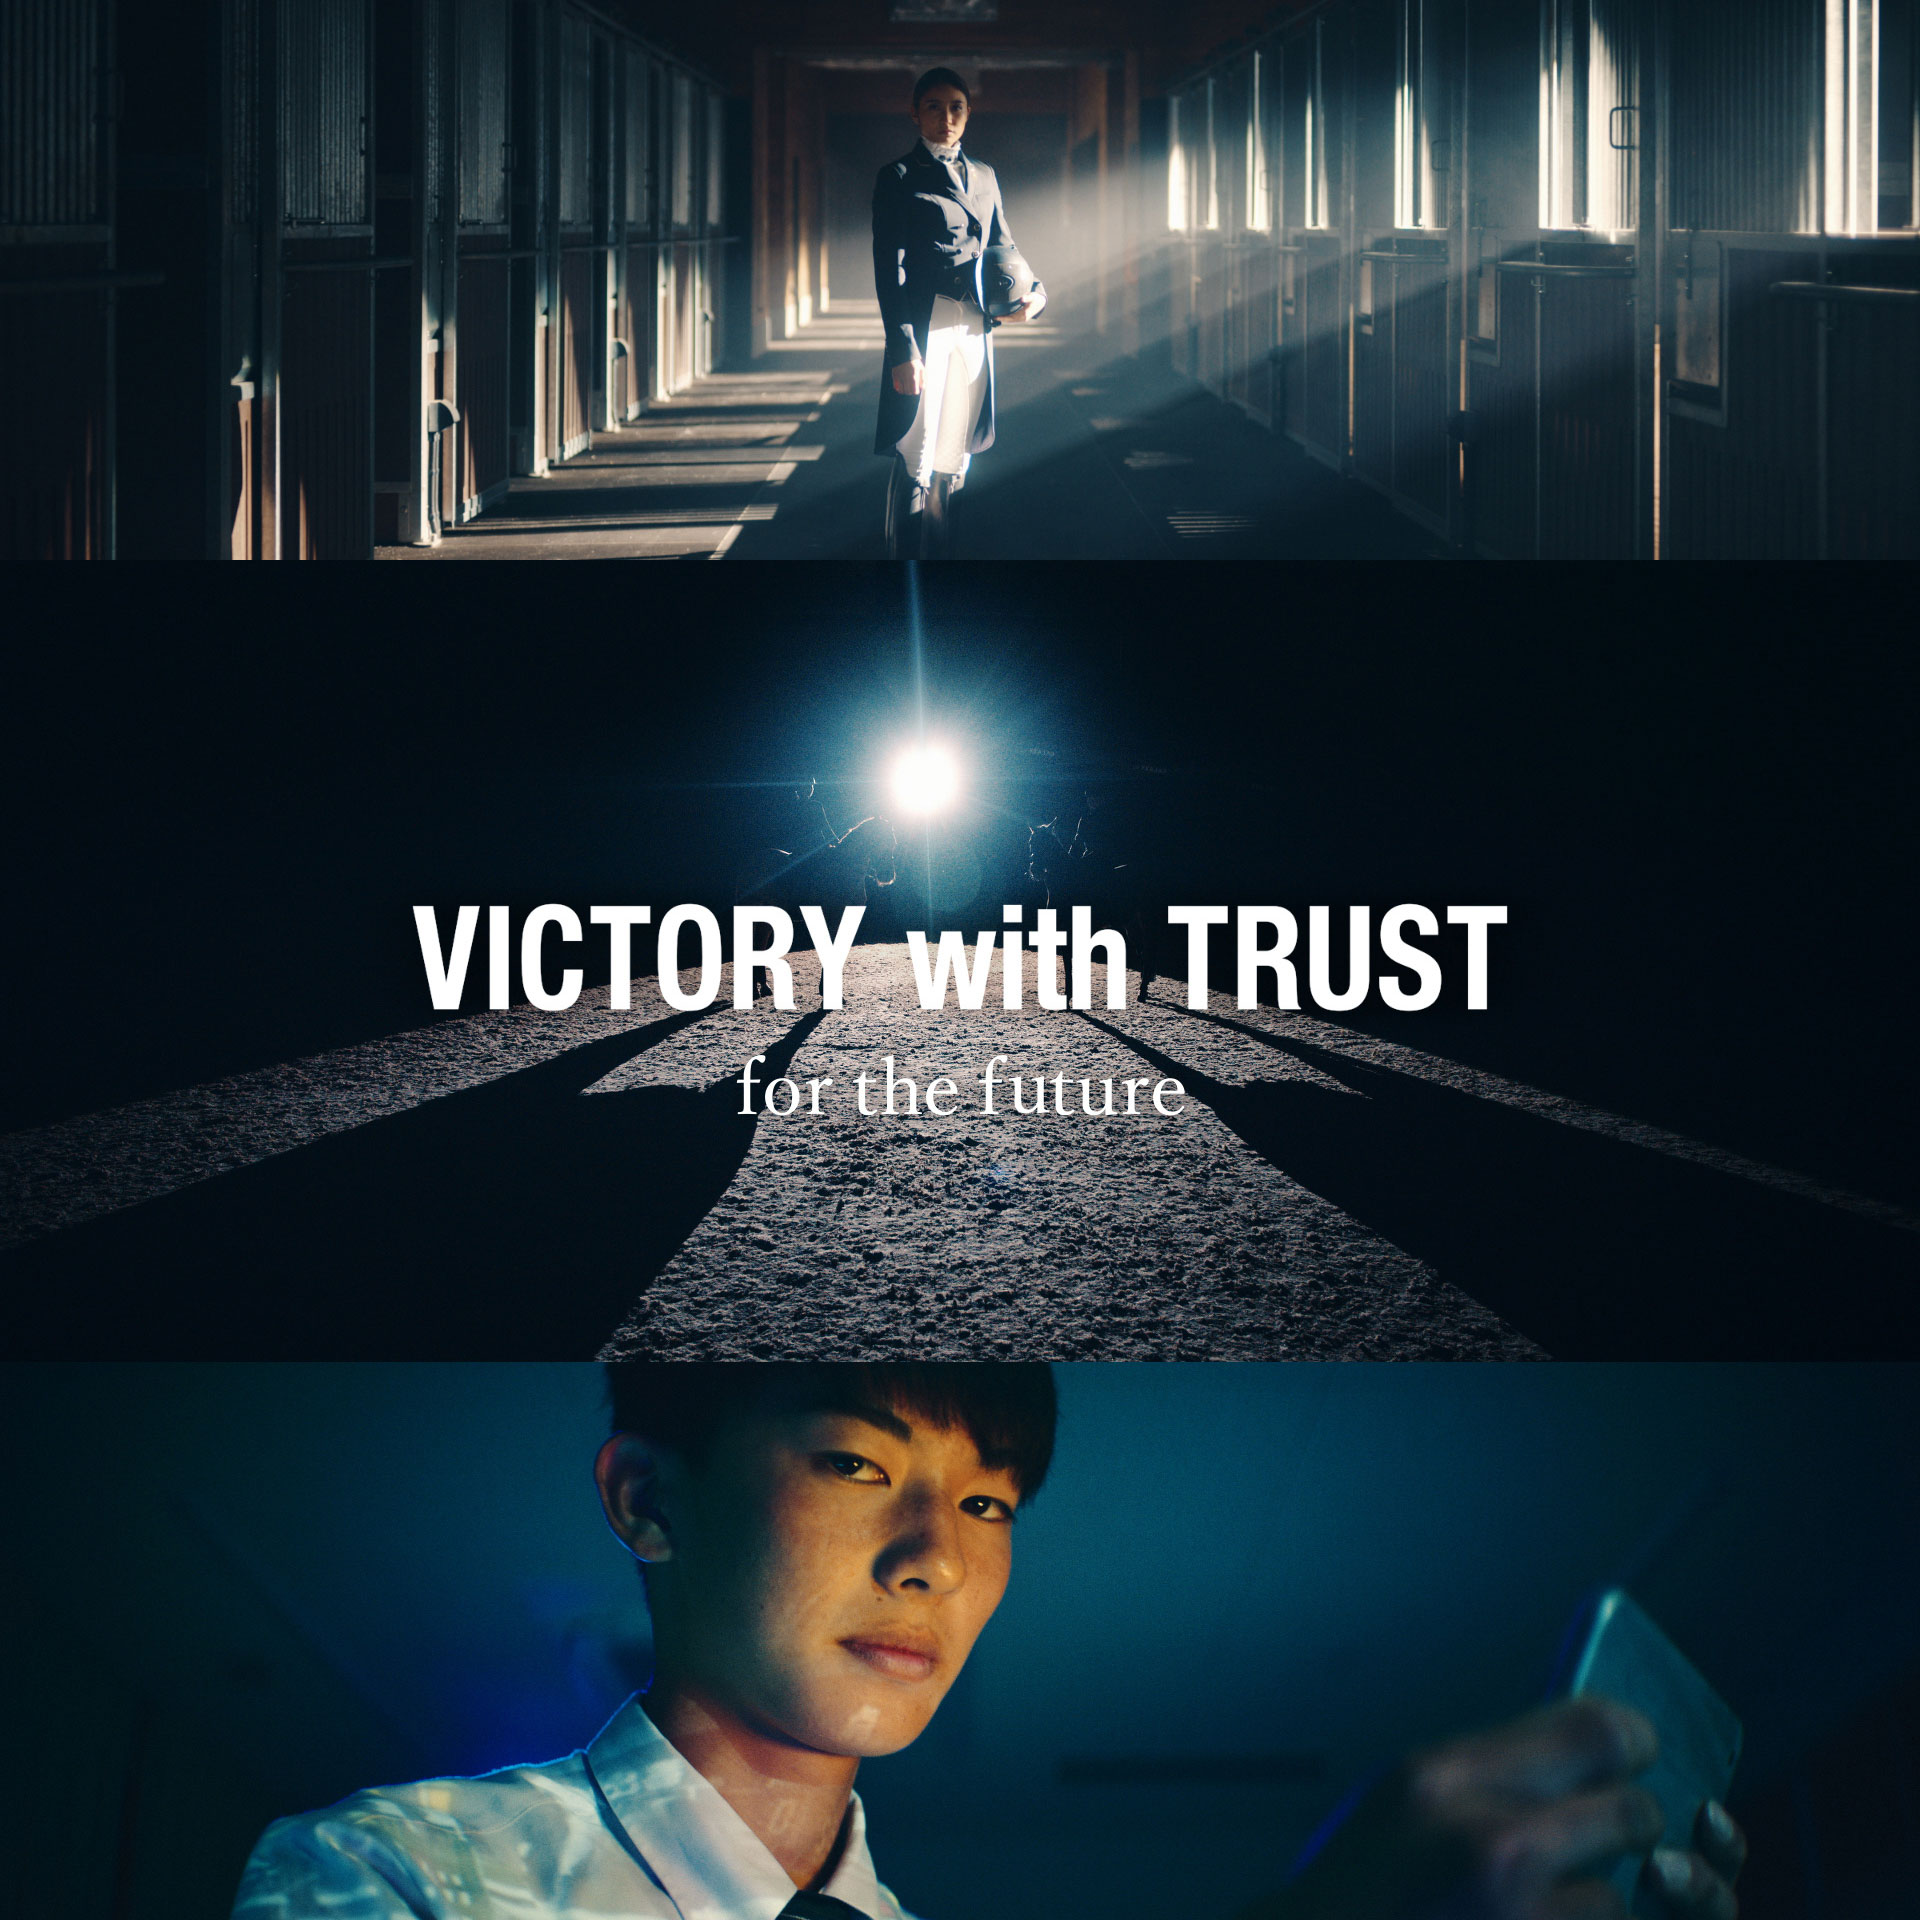 馬術 VICTORY with TRUST for the future